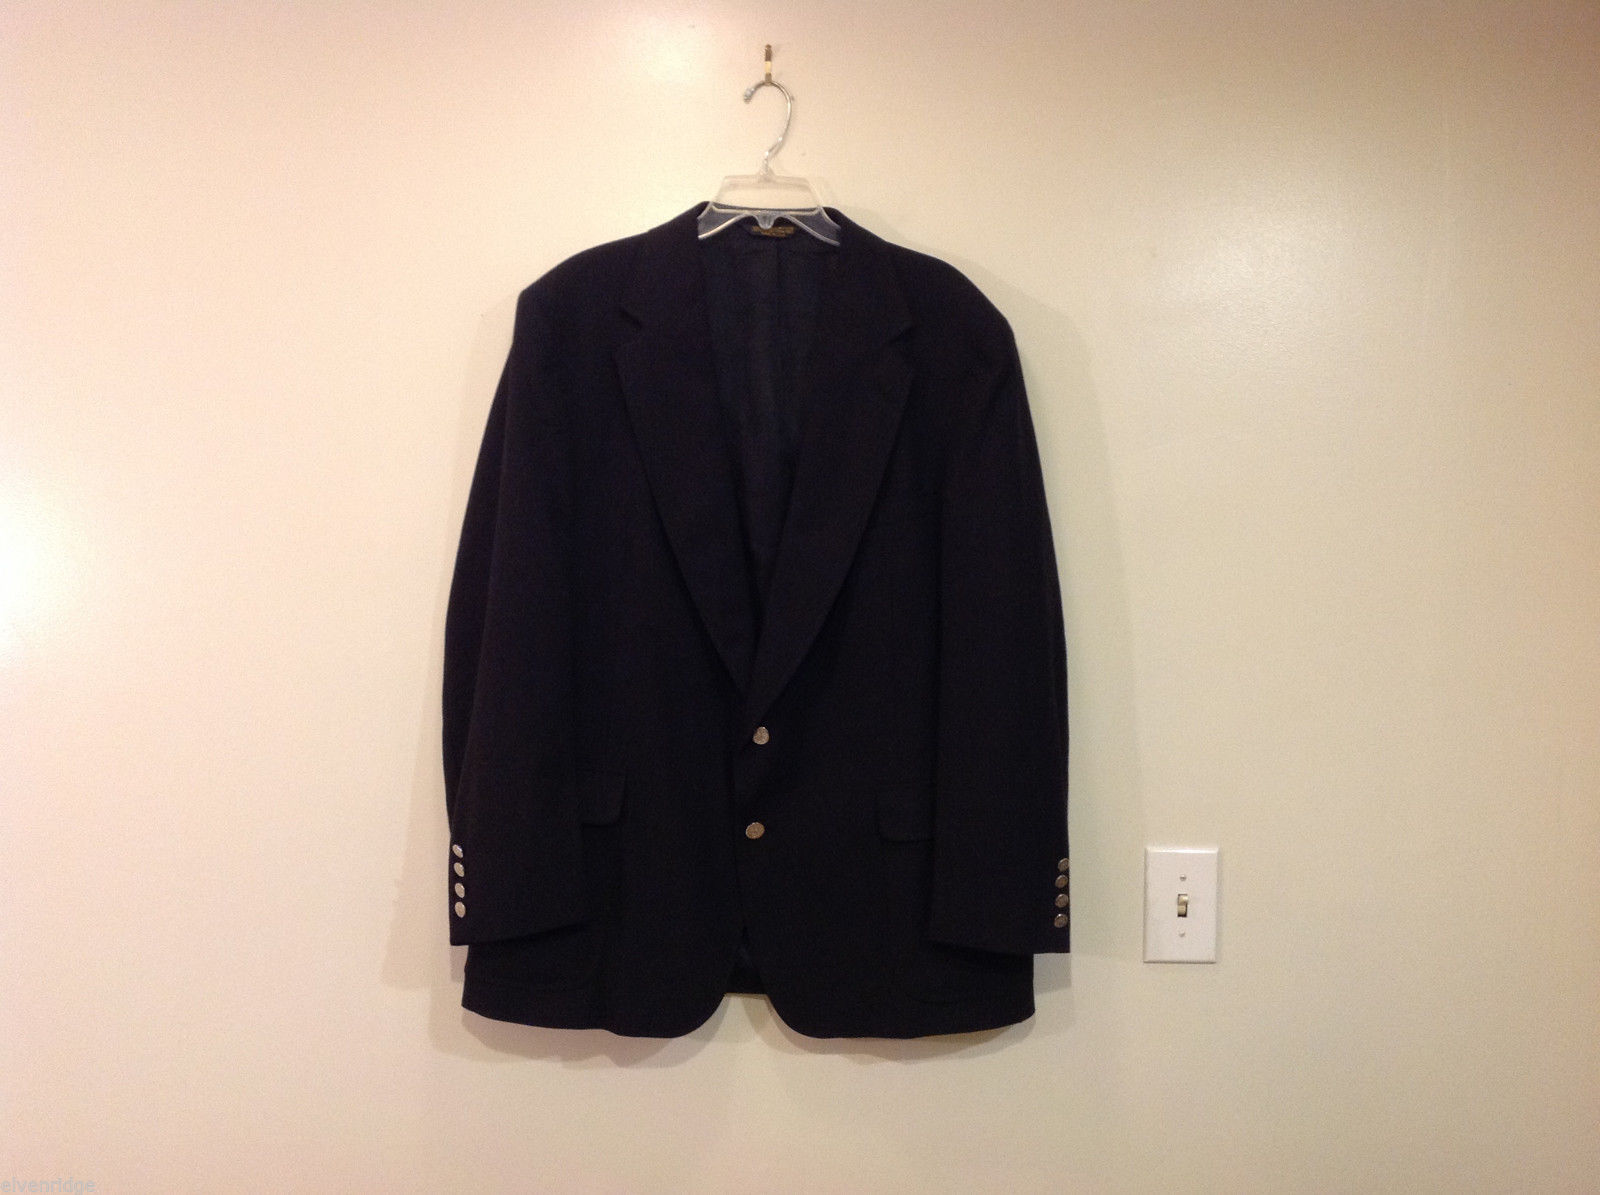 Strathmore by Anderson Little Black 100% Wool Blazer Suit Jacket Size 48R